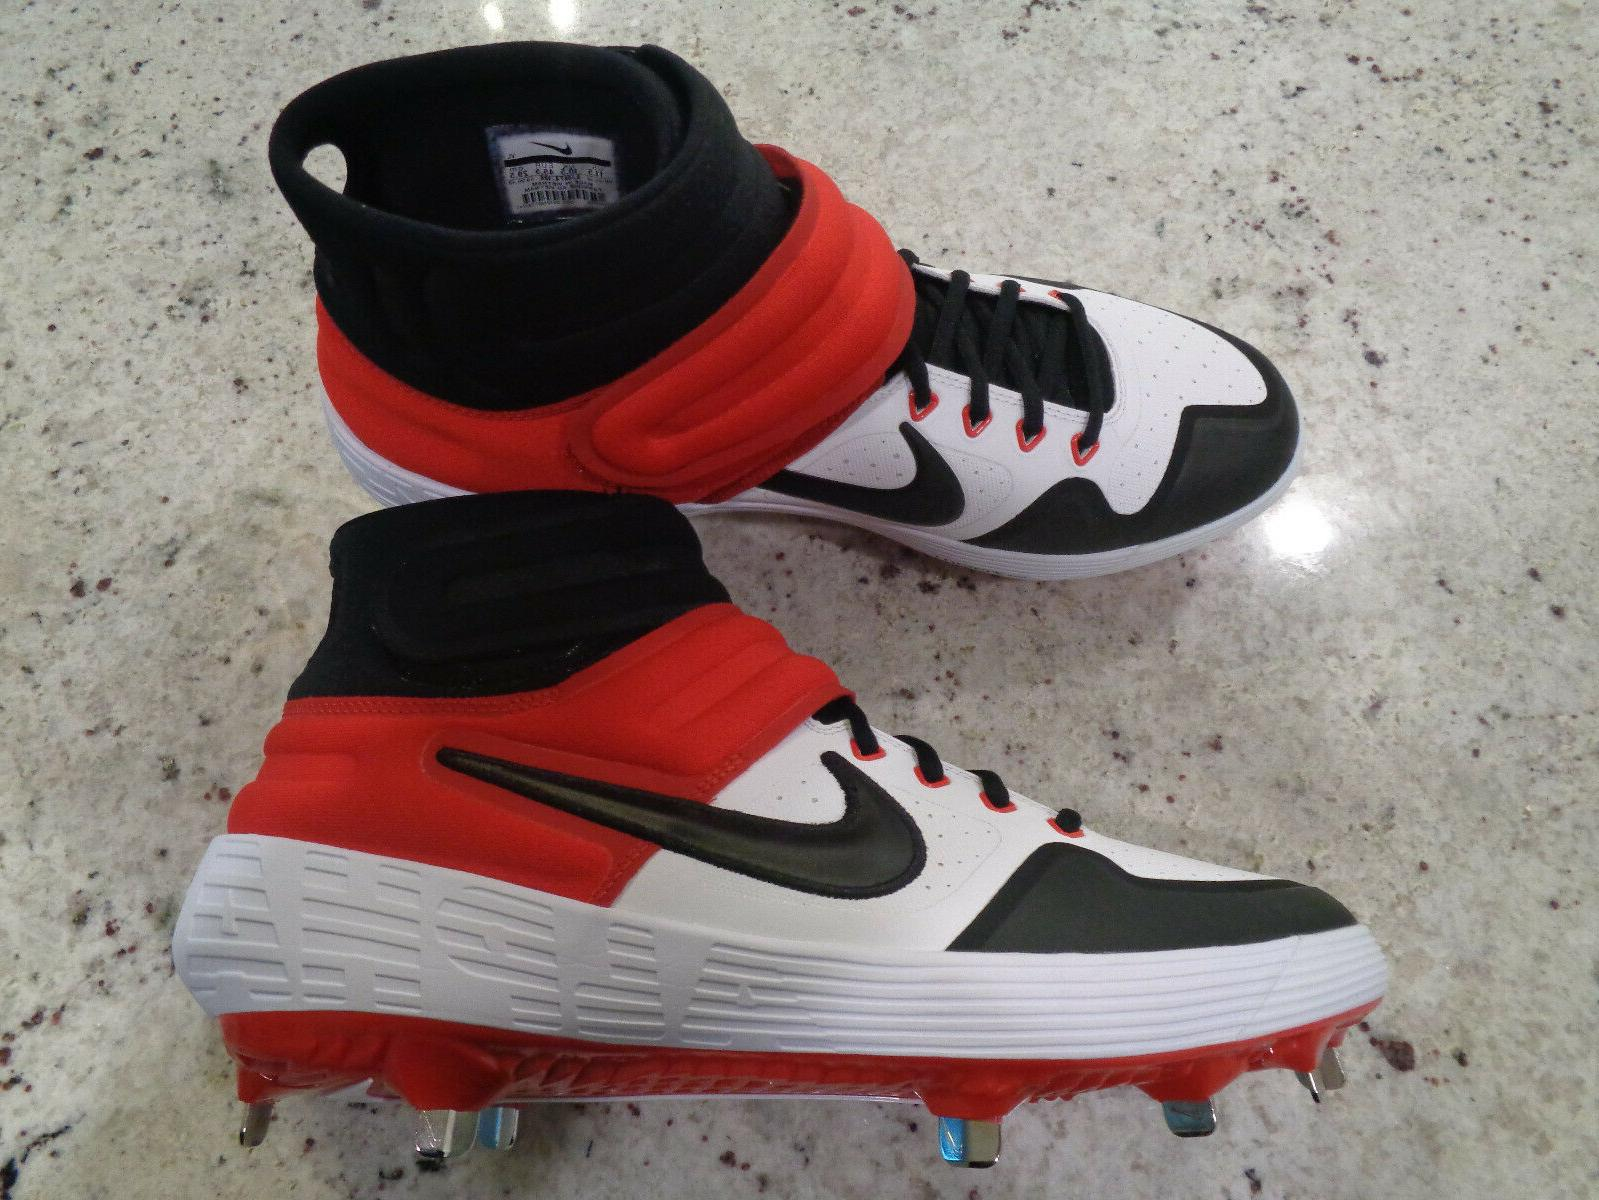 Nike 2 Mid Cleats 11.5